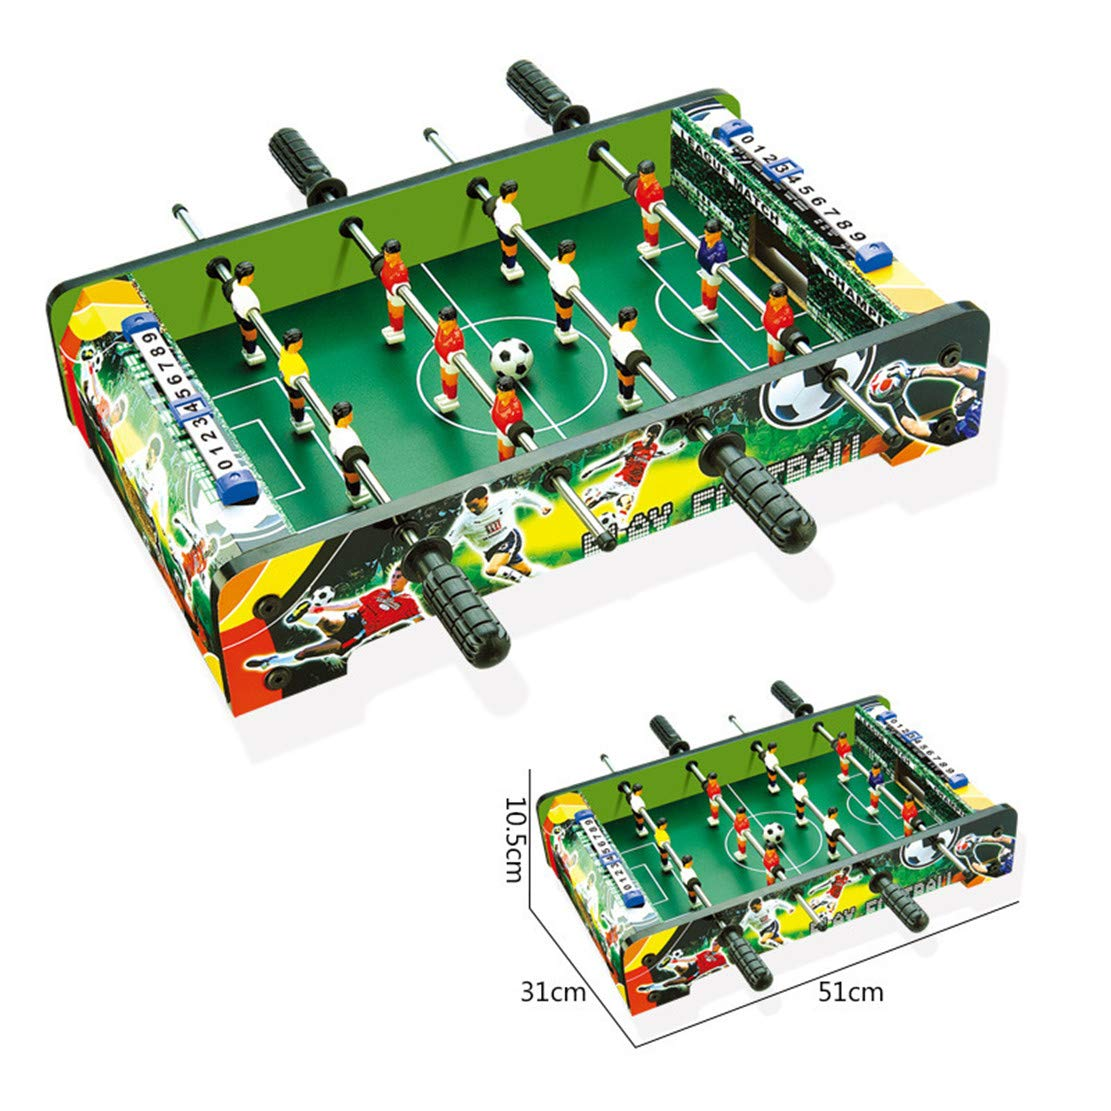 MSTQ Large Football Table Wooden Indoor Soccer Table 6 Football Table Double Battle Desktop Board Game Children Sports Toys 9 Models (801, L) by MSTQ